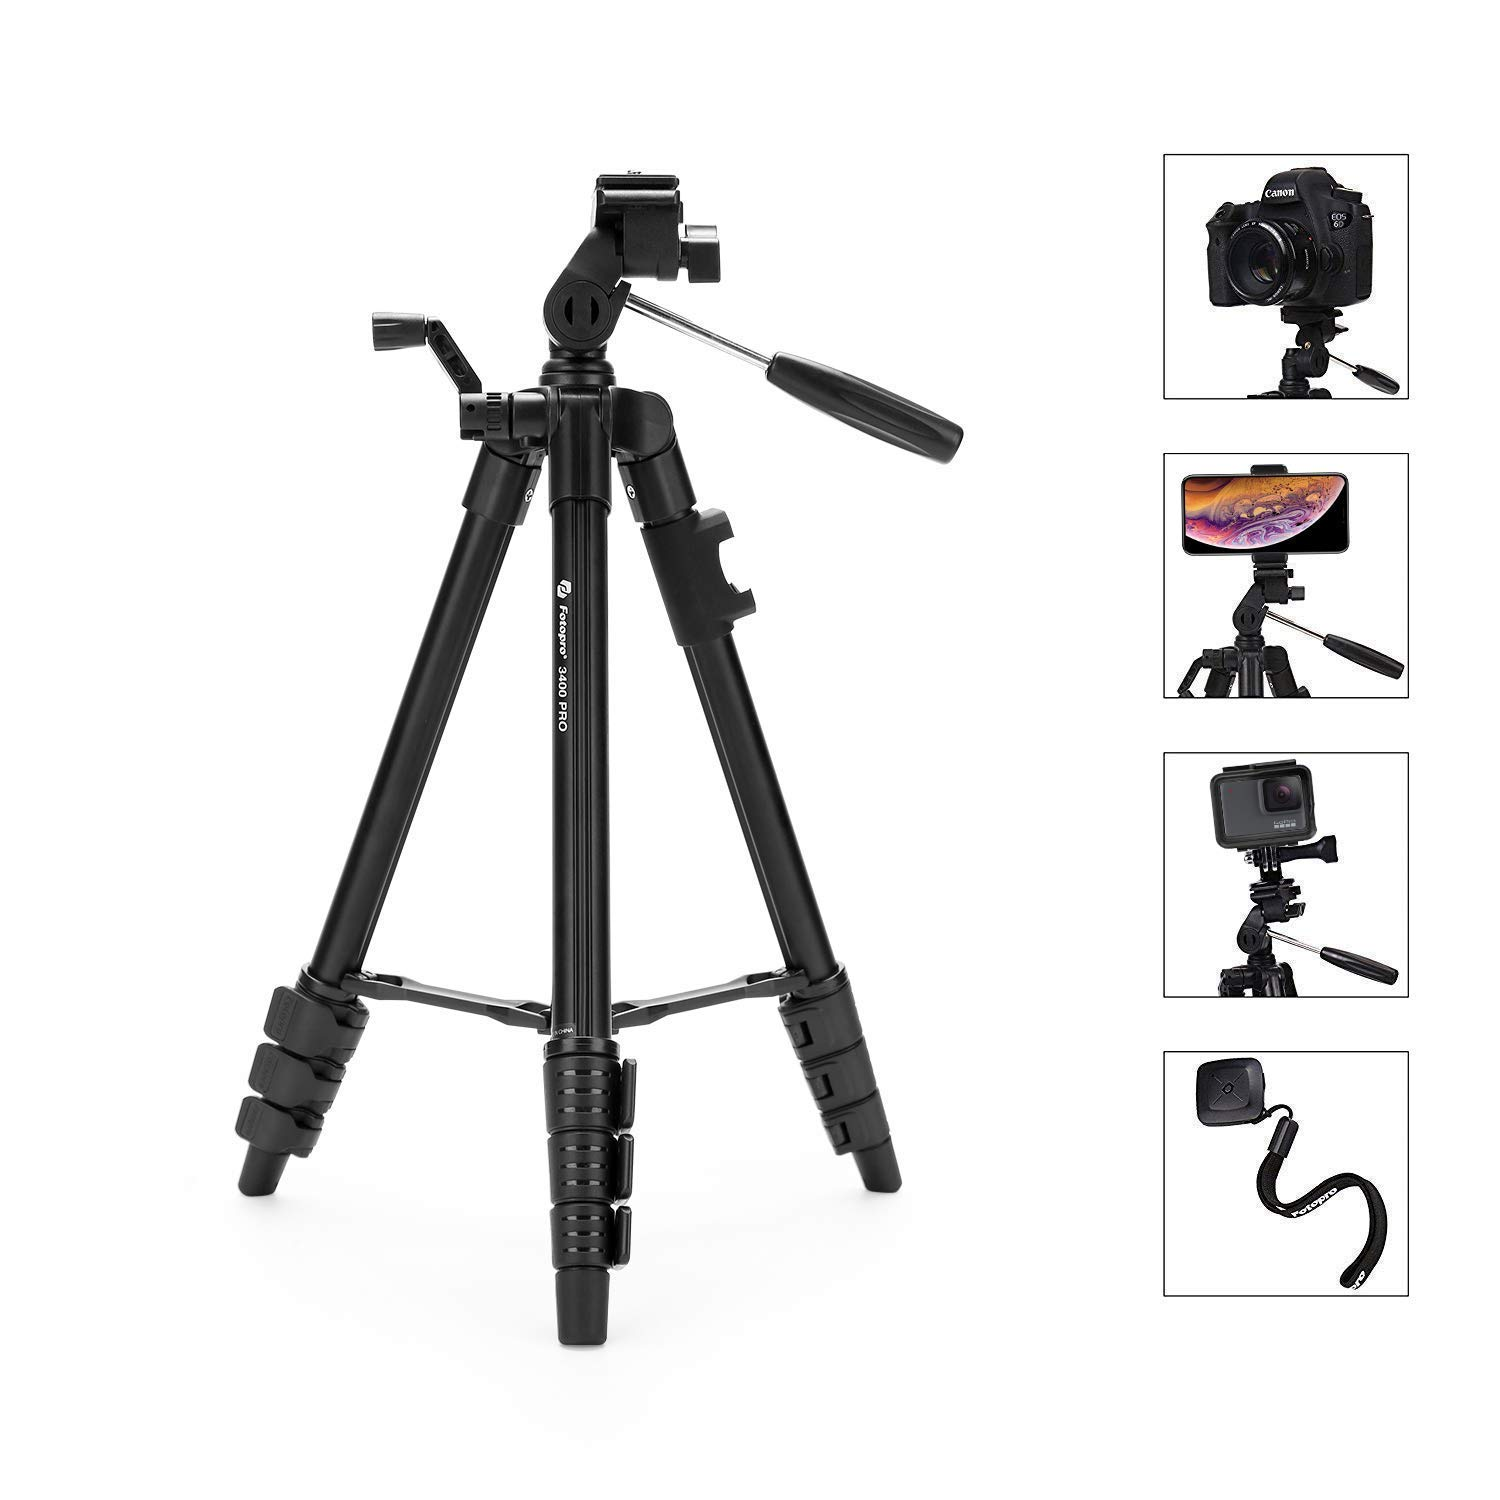 iStabilizer Camera Tripod, Phone Tripod Mount, Tripod Aluminum with Bluetooth Remote, Travel Tripod Stand Compatible for Canon, Nikon, Sony by iStabilizer